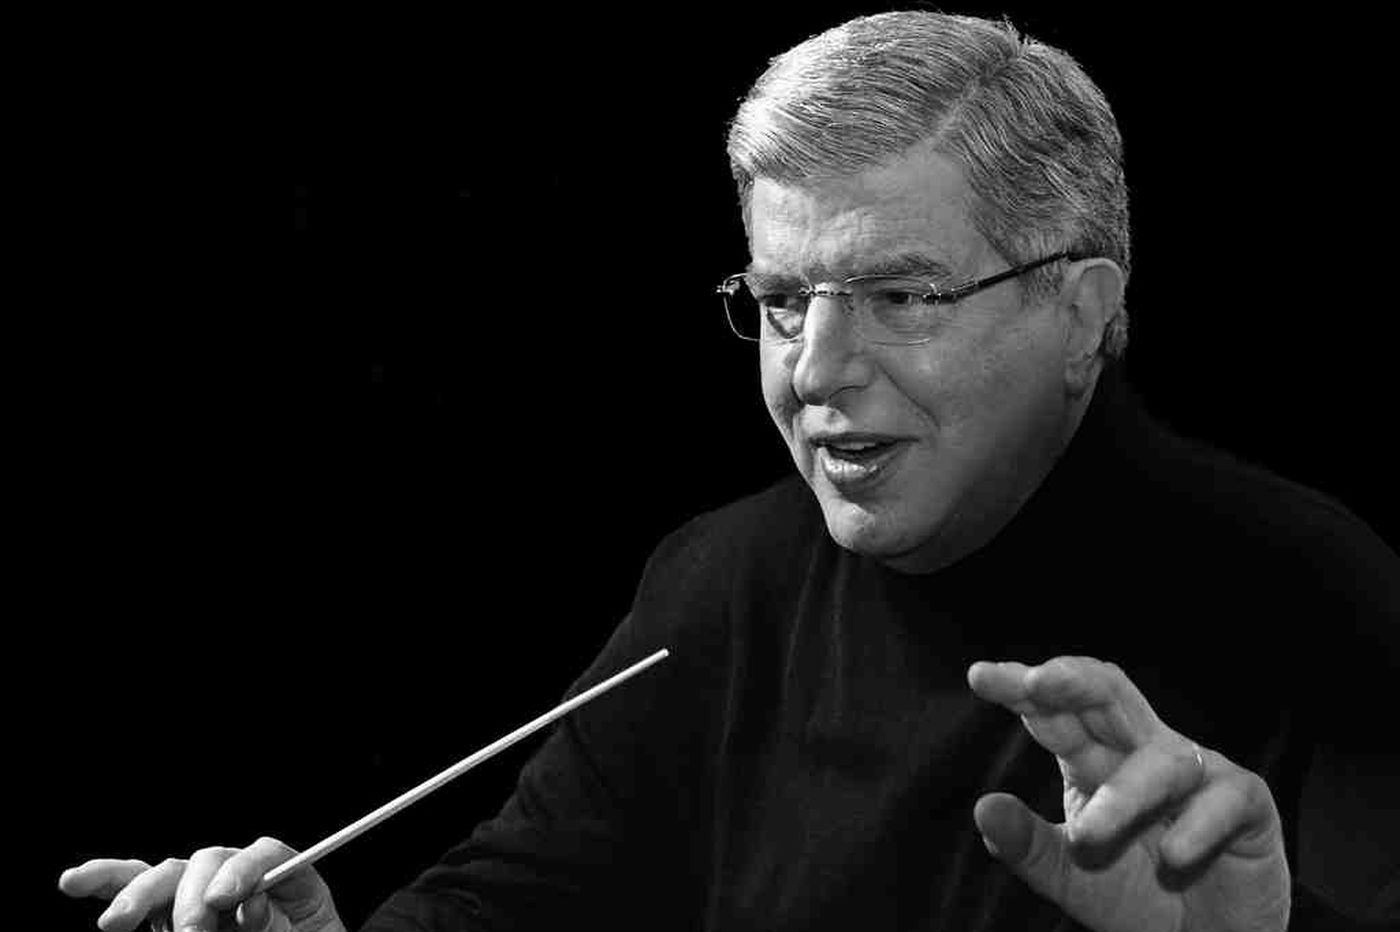 Hamlisch and Feinstein delight at Great American Songbook concert